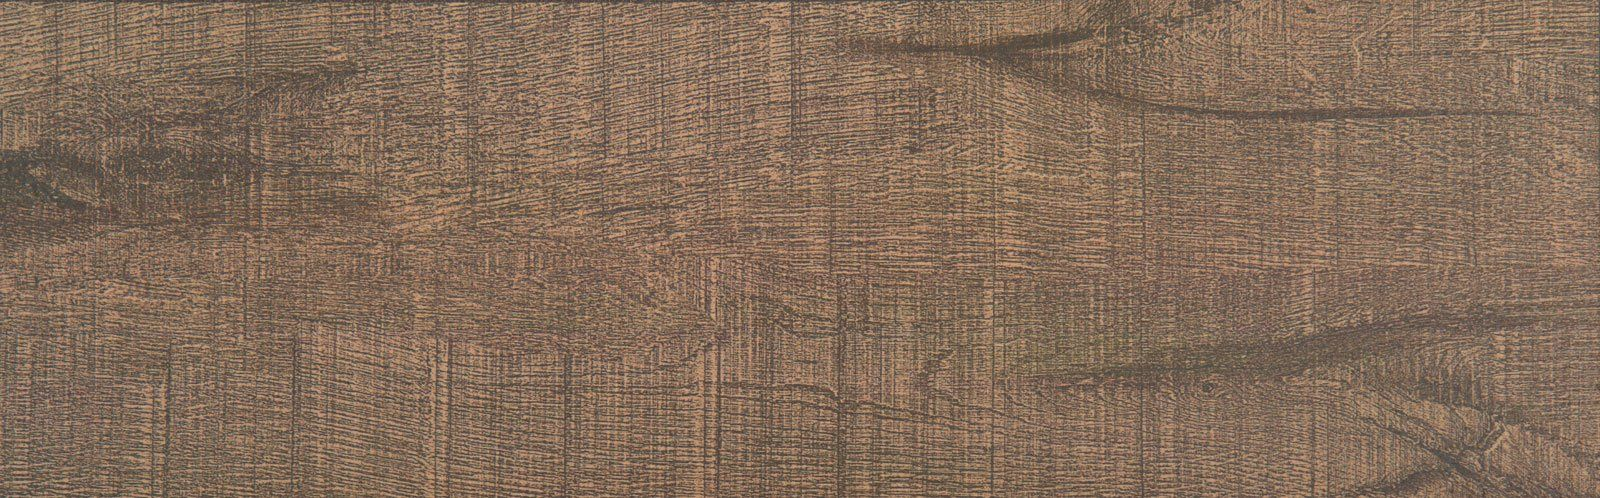 Engineered Cork Flooring Planks In Driftwood by Cali